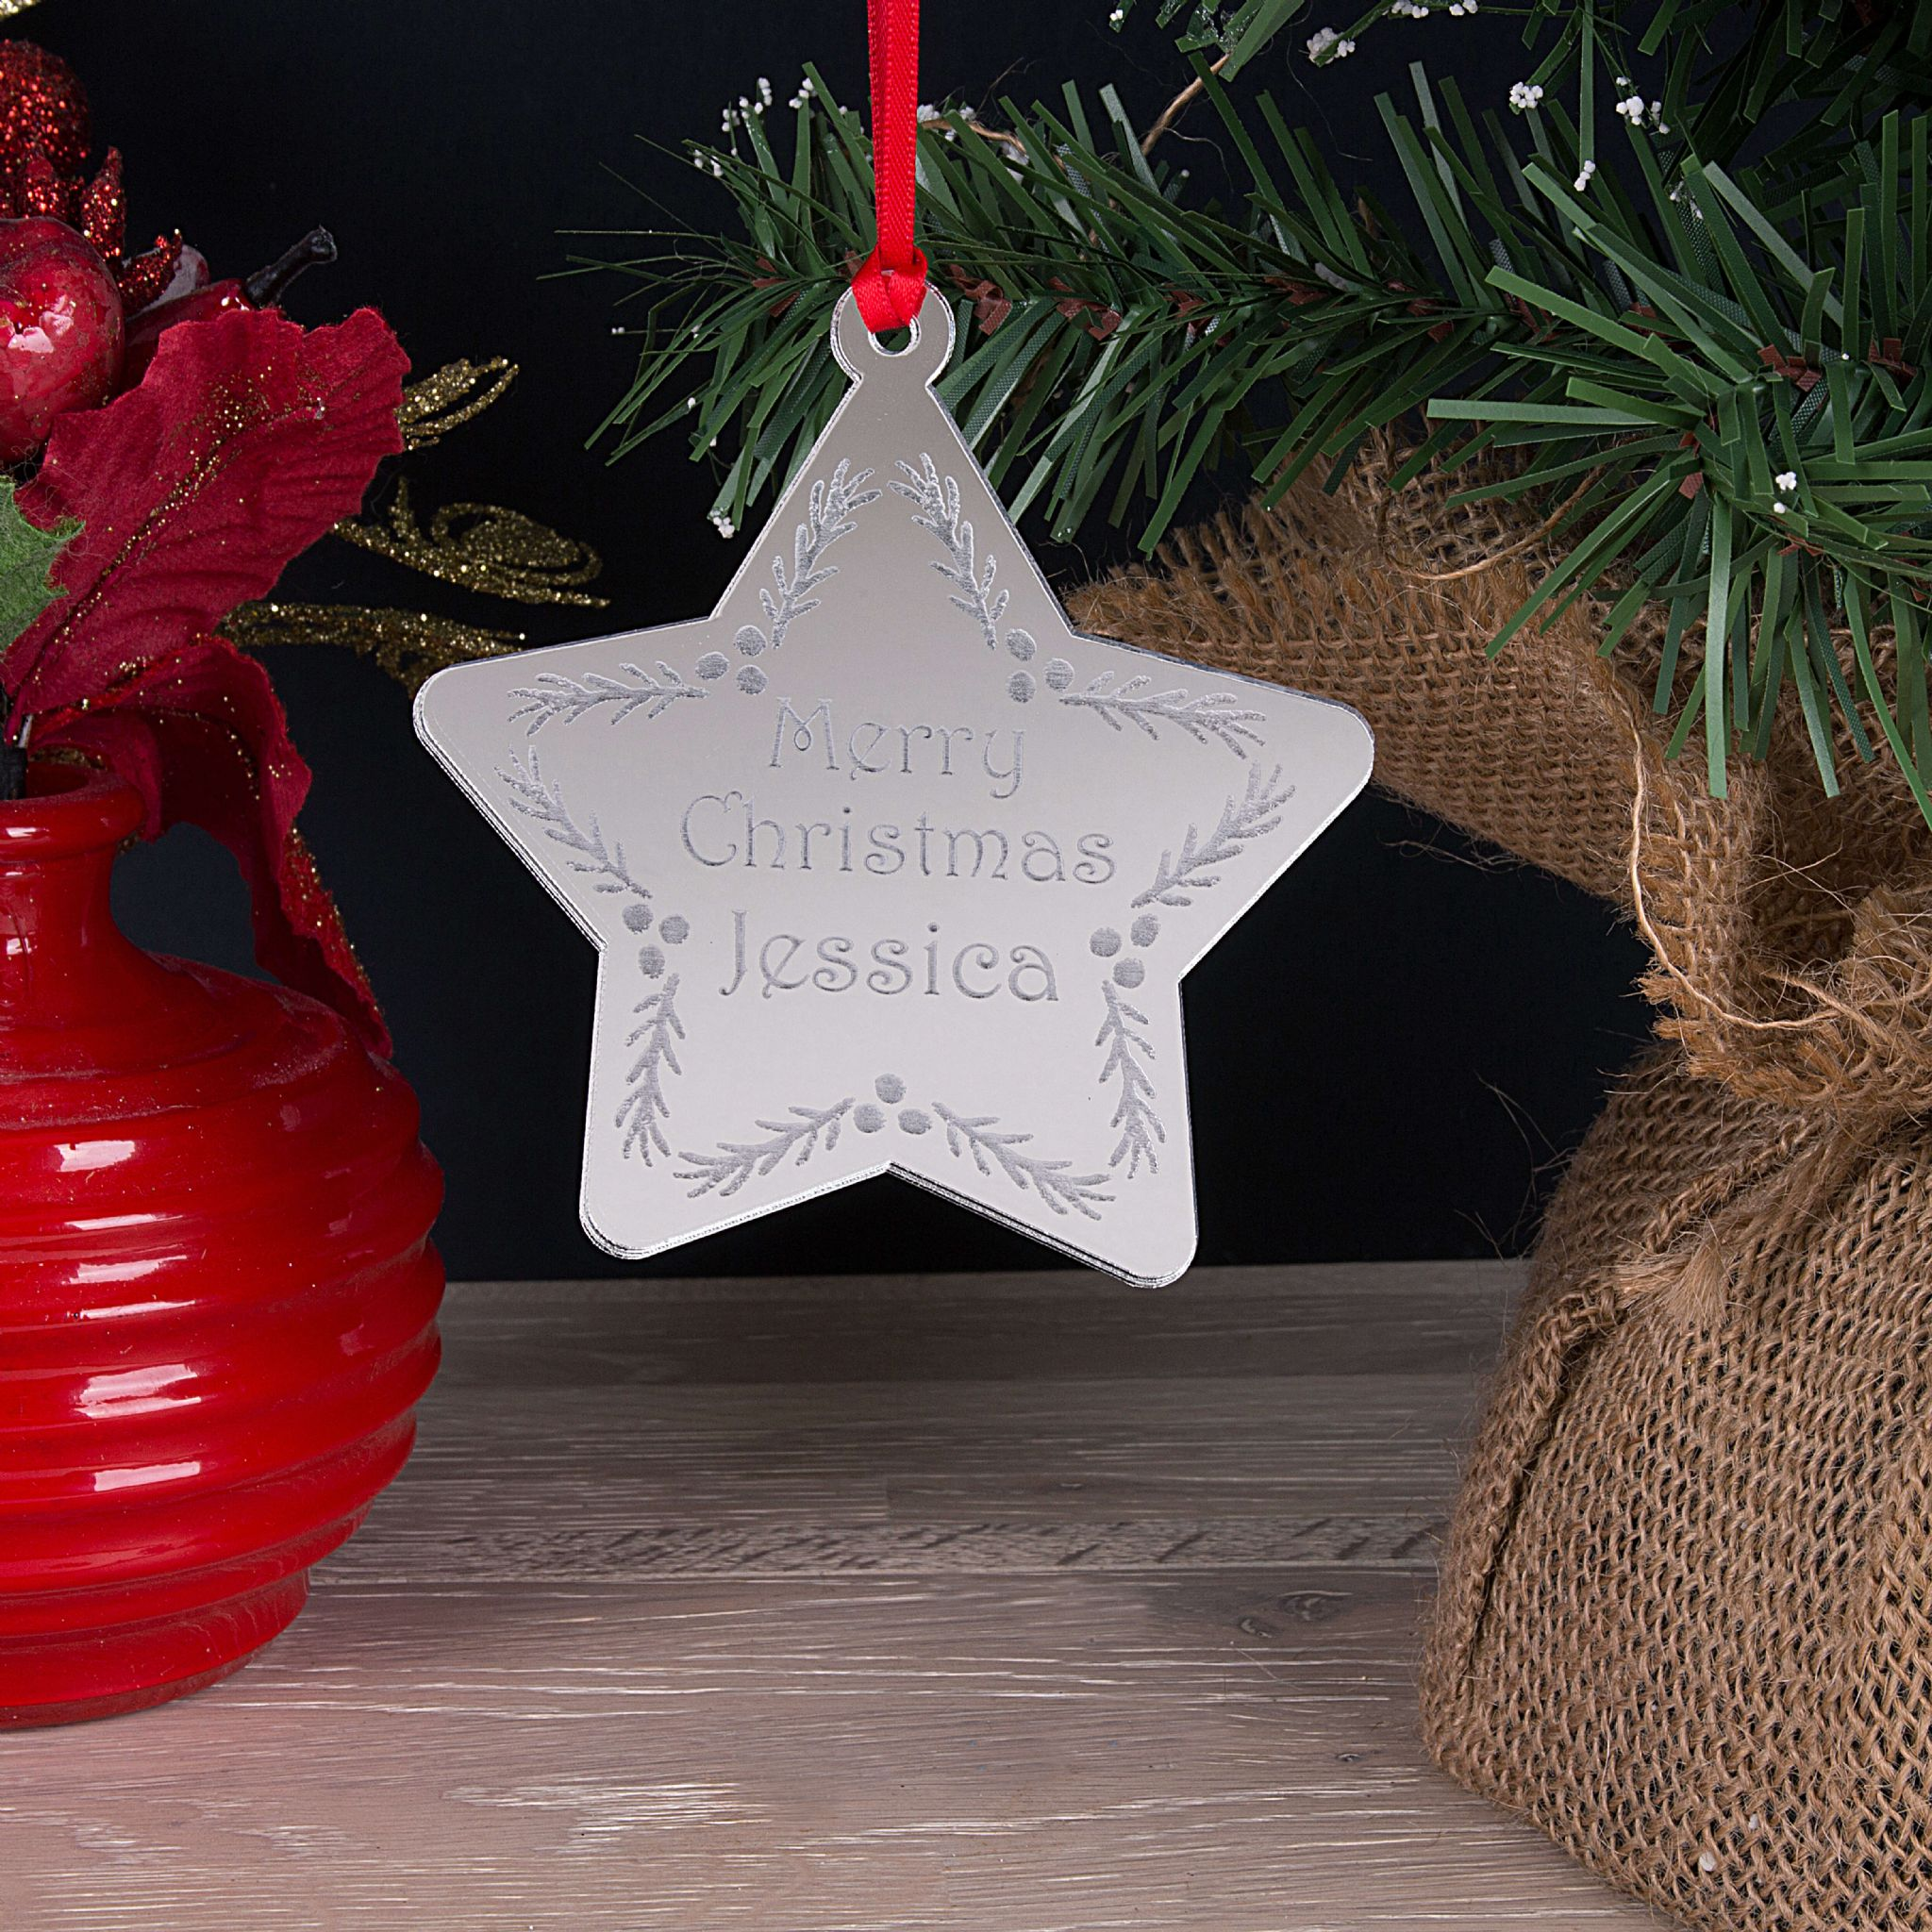 Little Gifts With Love - Personalised First Name Engraved Christmas Tree Star Decoration Bauble Gift